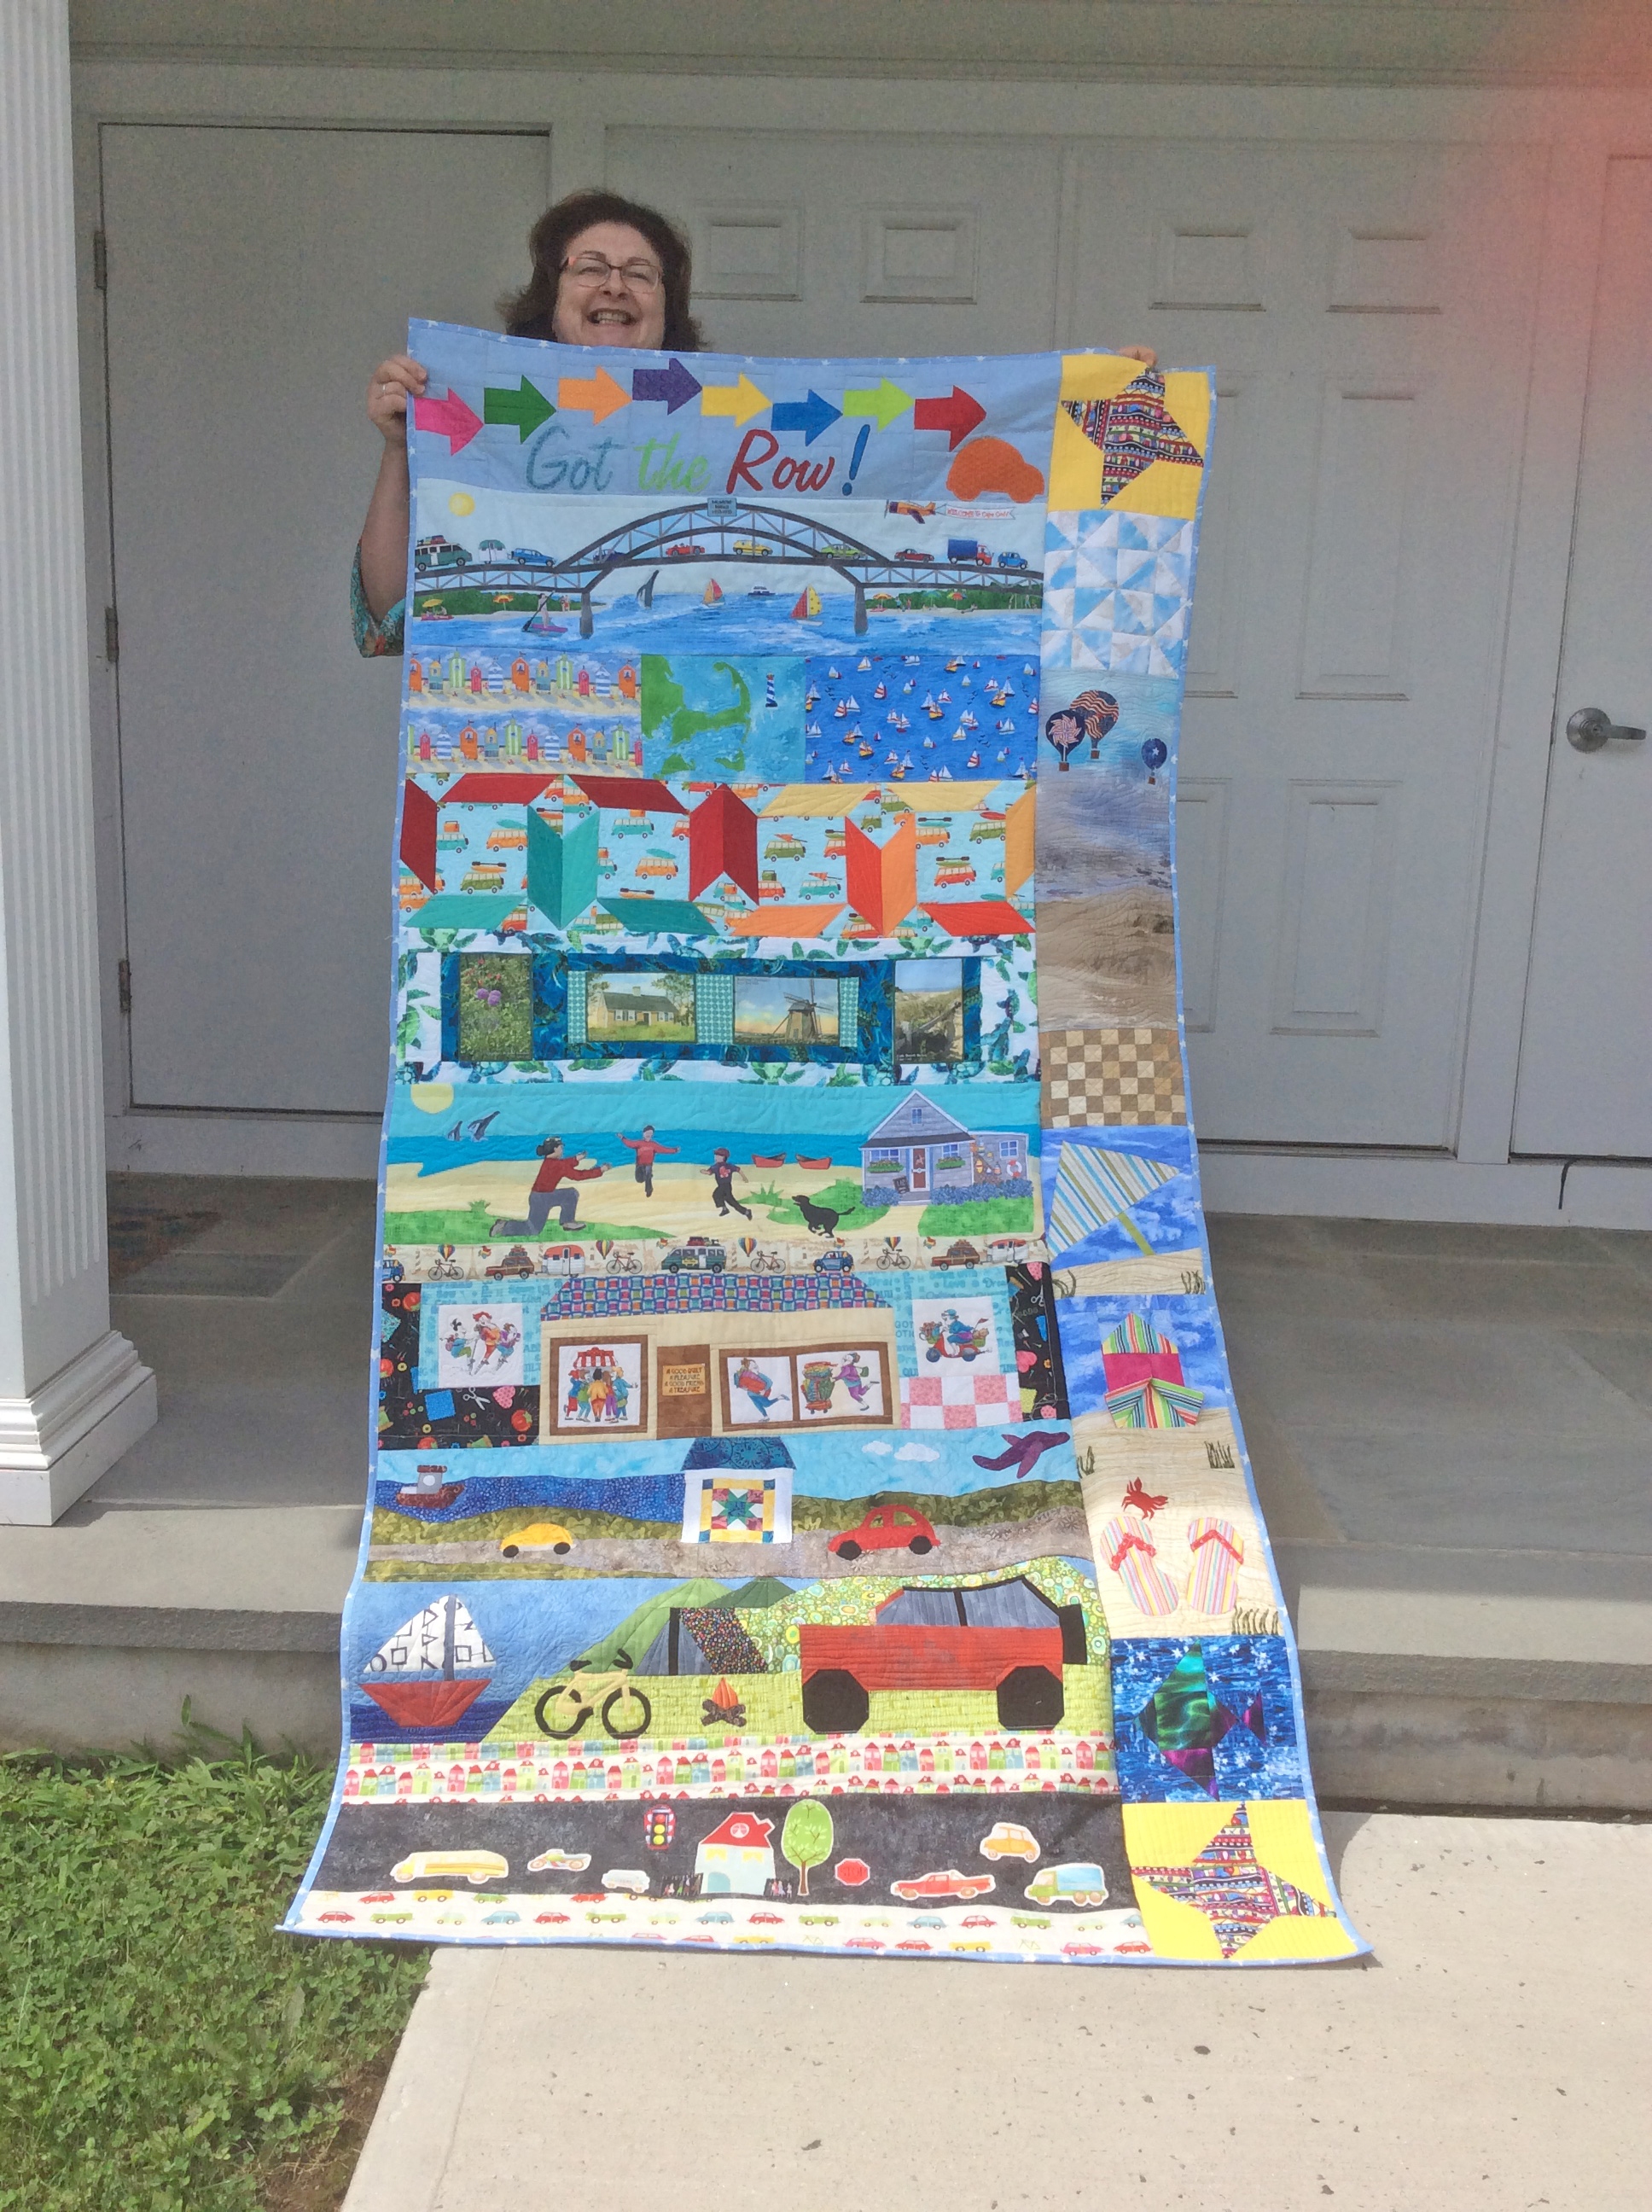 The Quilt Shop by Lois Row by Row 2017 Winner is Cathlin McKissick from Easton, CT.